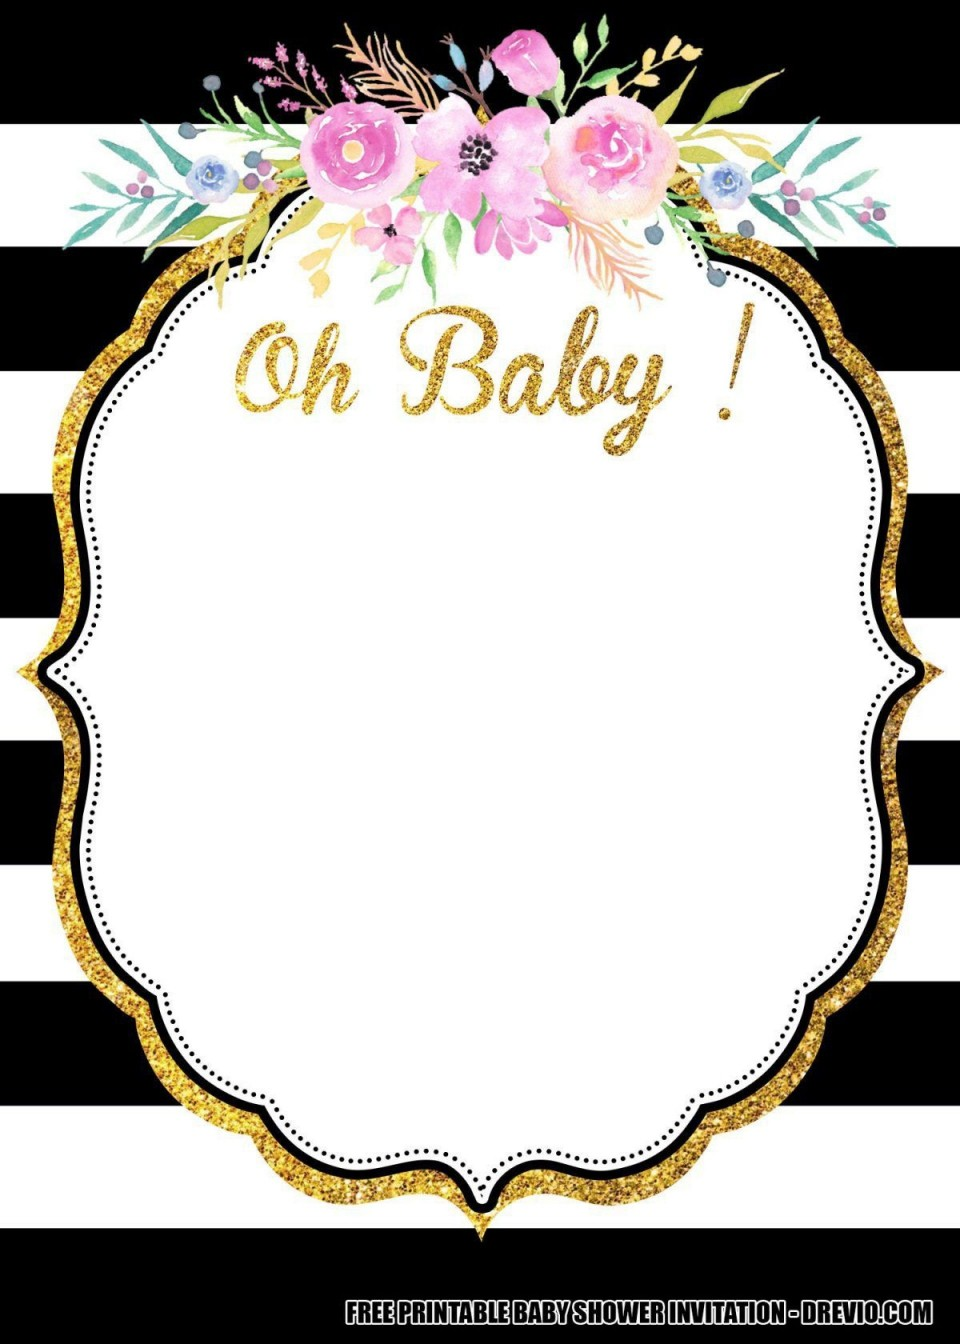 010 Incredible Baby Shower Invitation Card Template Free Download Inspiration  Indian960